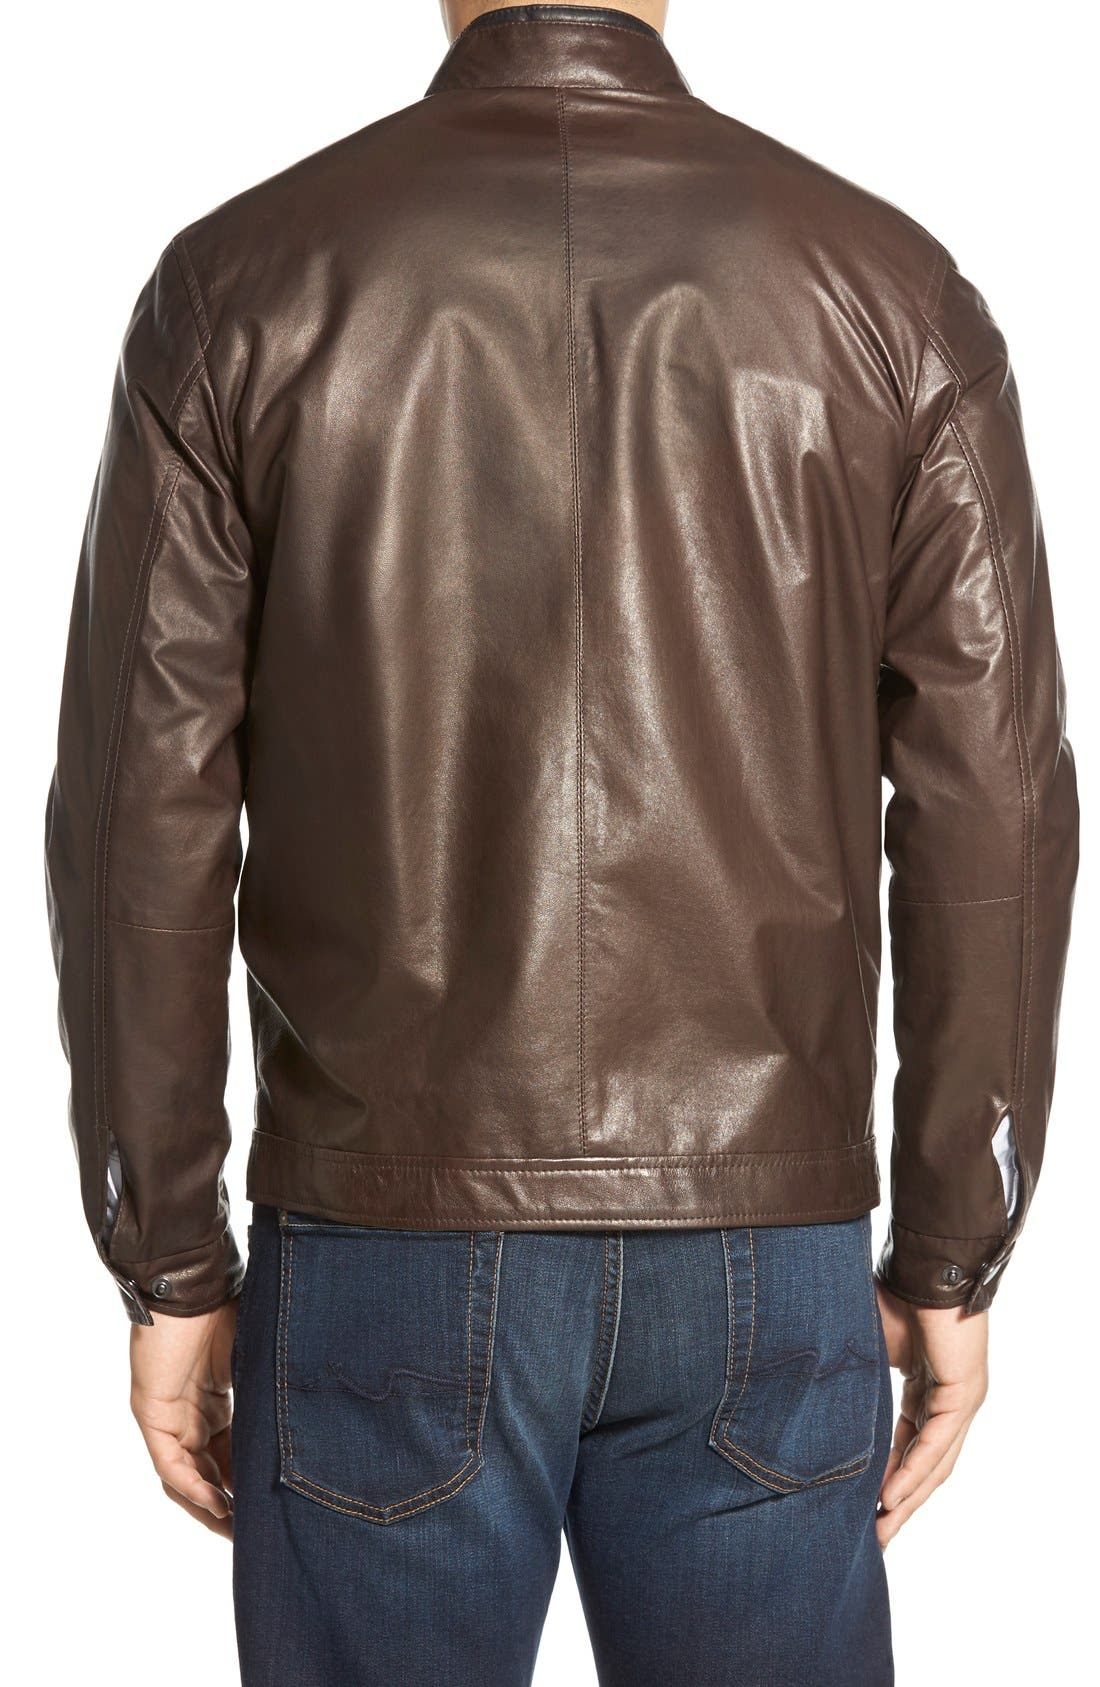 Lambskin Leather Jacket,                             Alternate thumbnail 2, color,                             Coffee